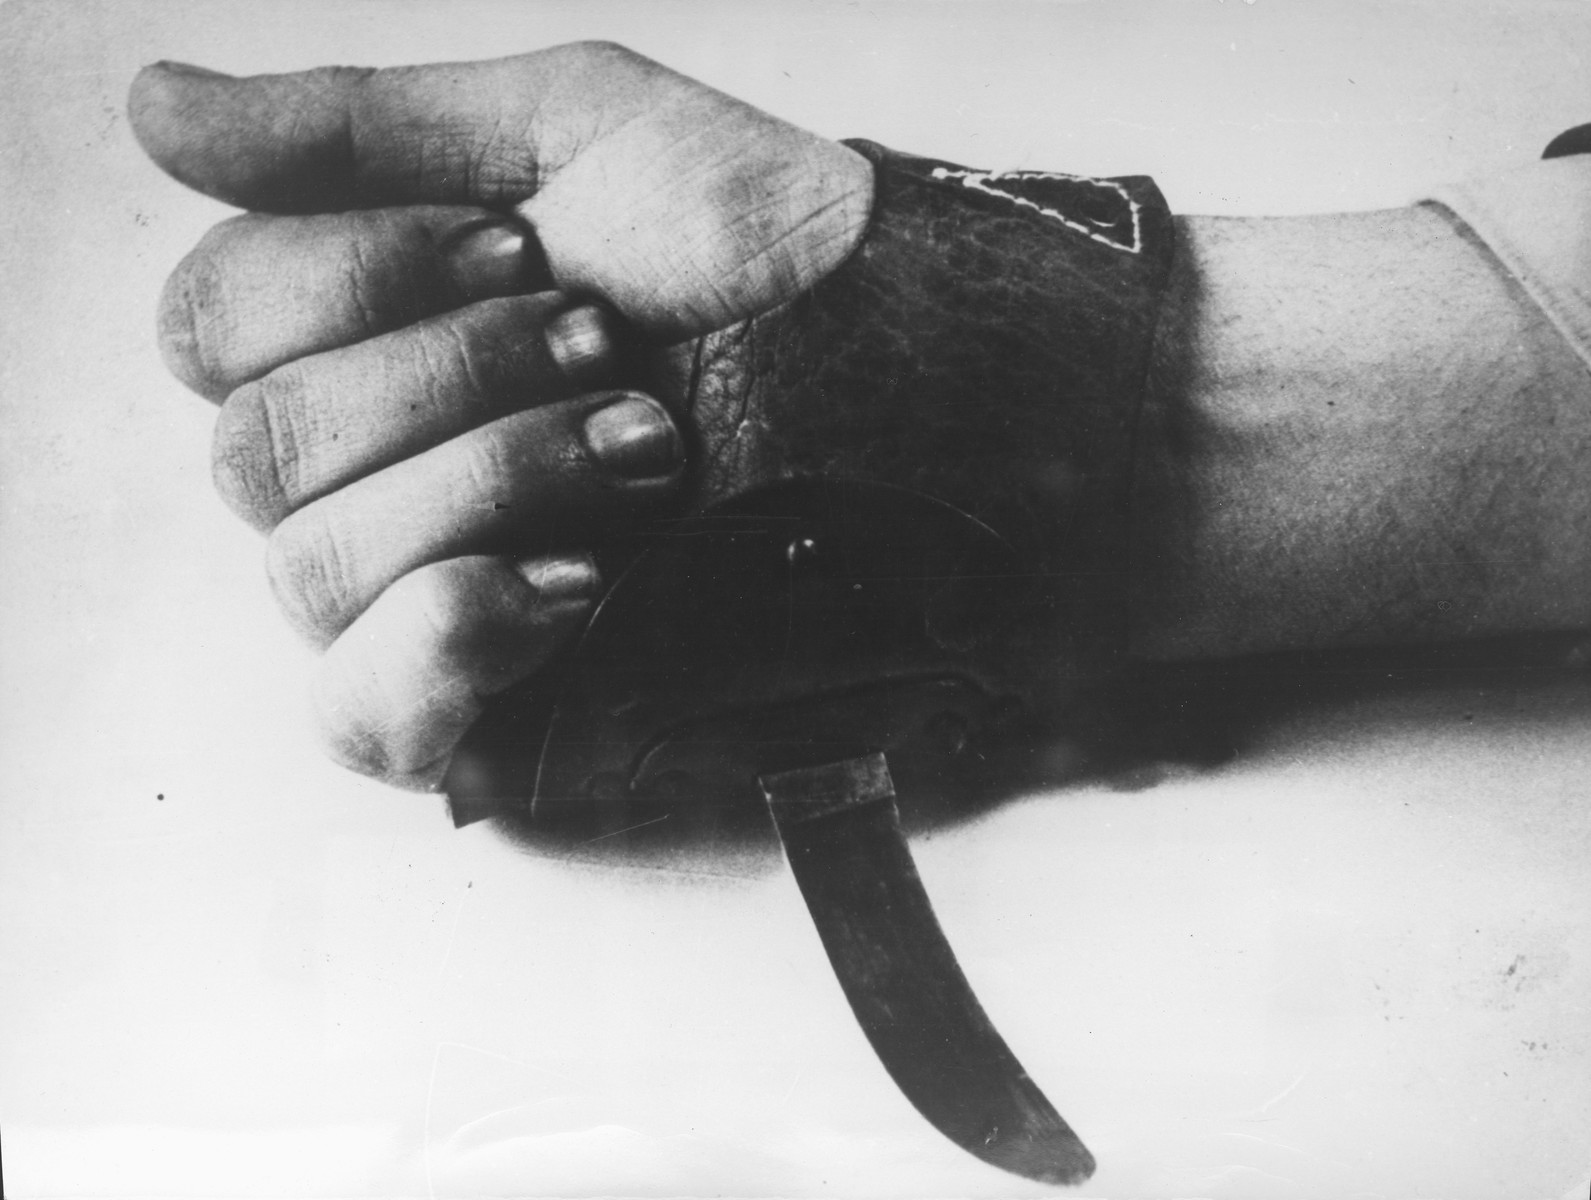 A special knife that is worn over the hand that was used by the Ustasa militia for the quick slaughter of inmates in concentration camps.